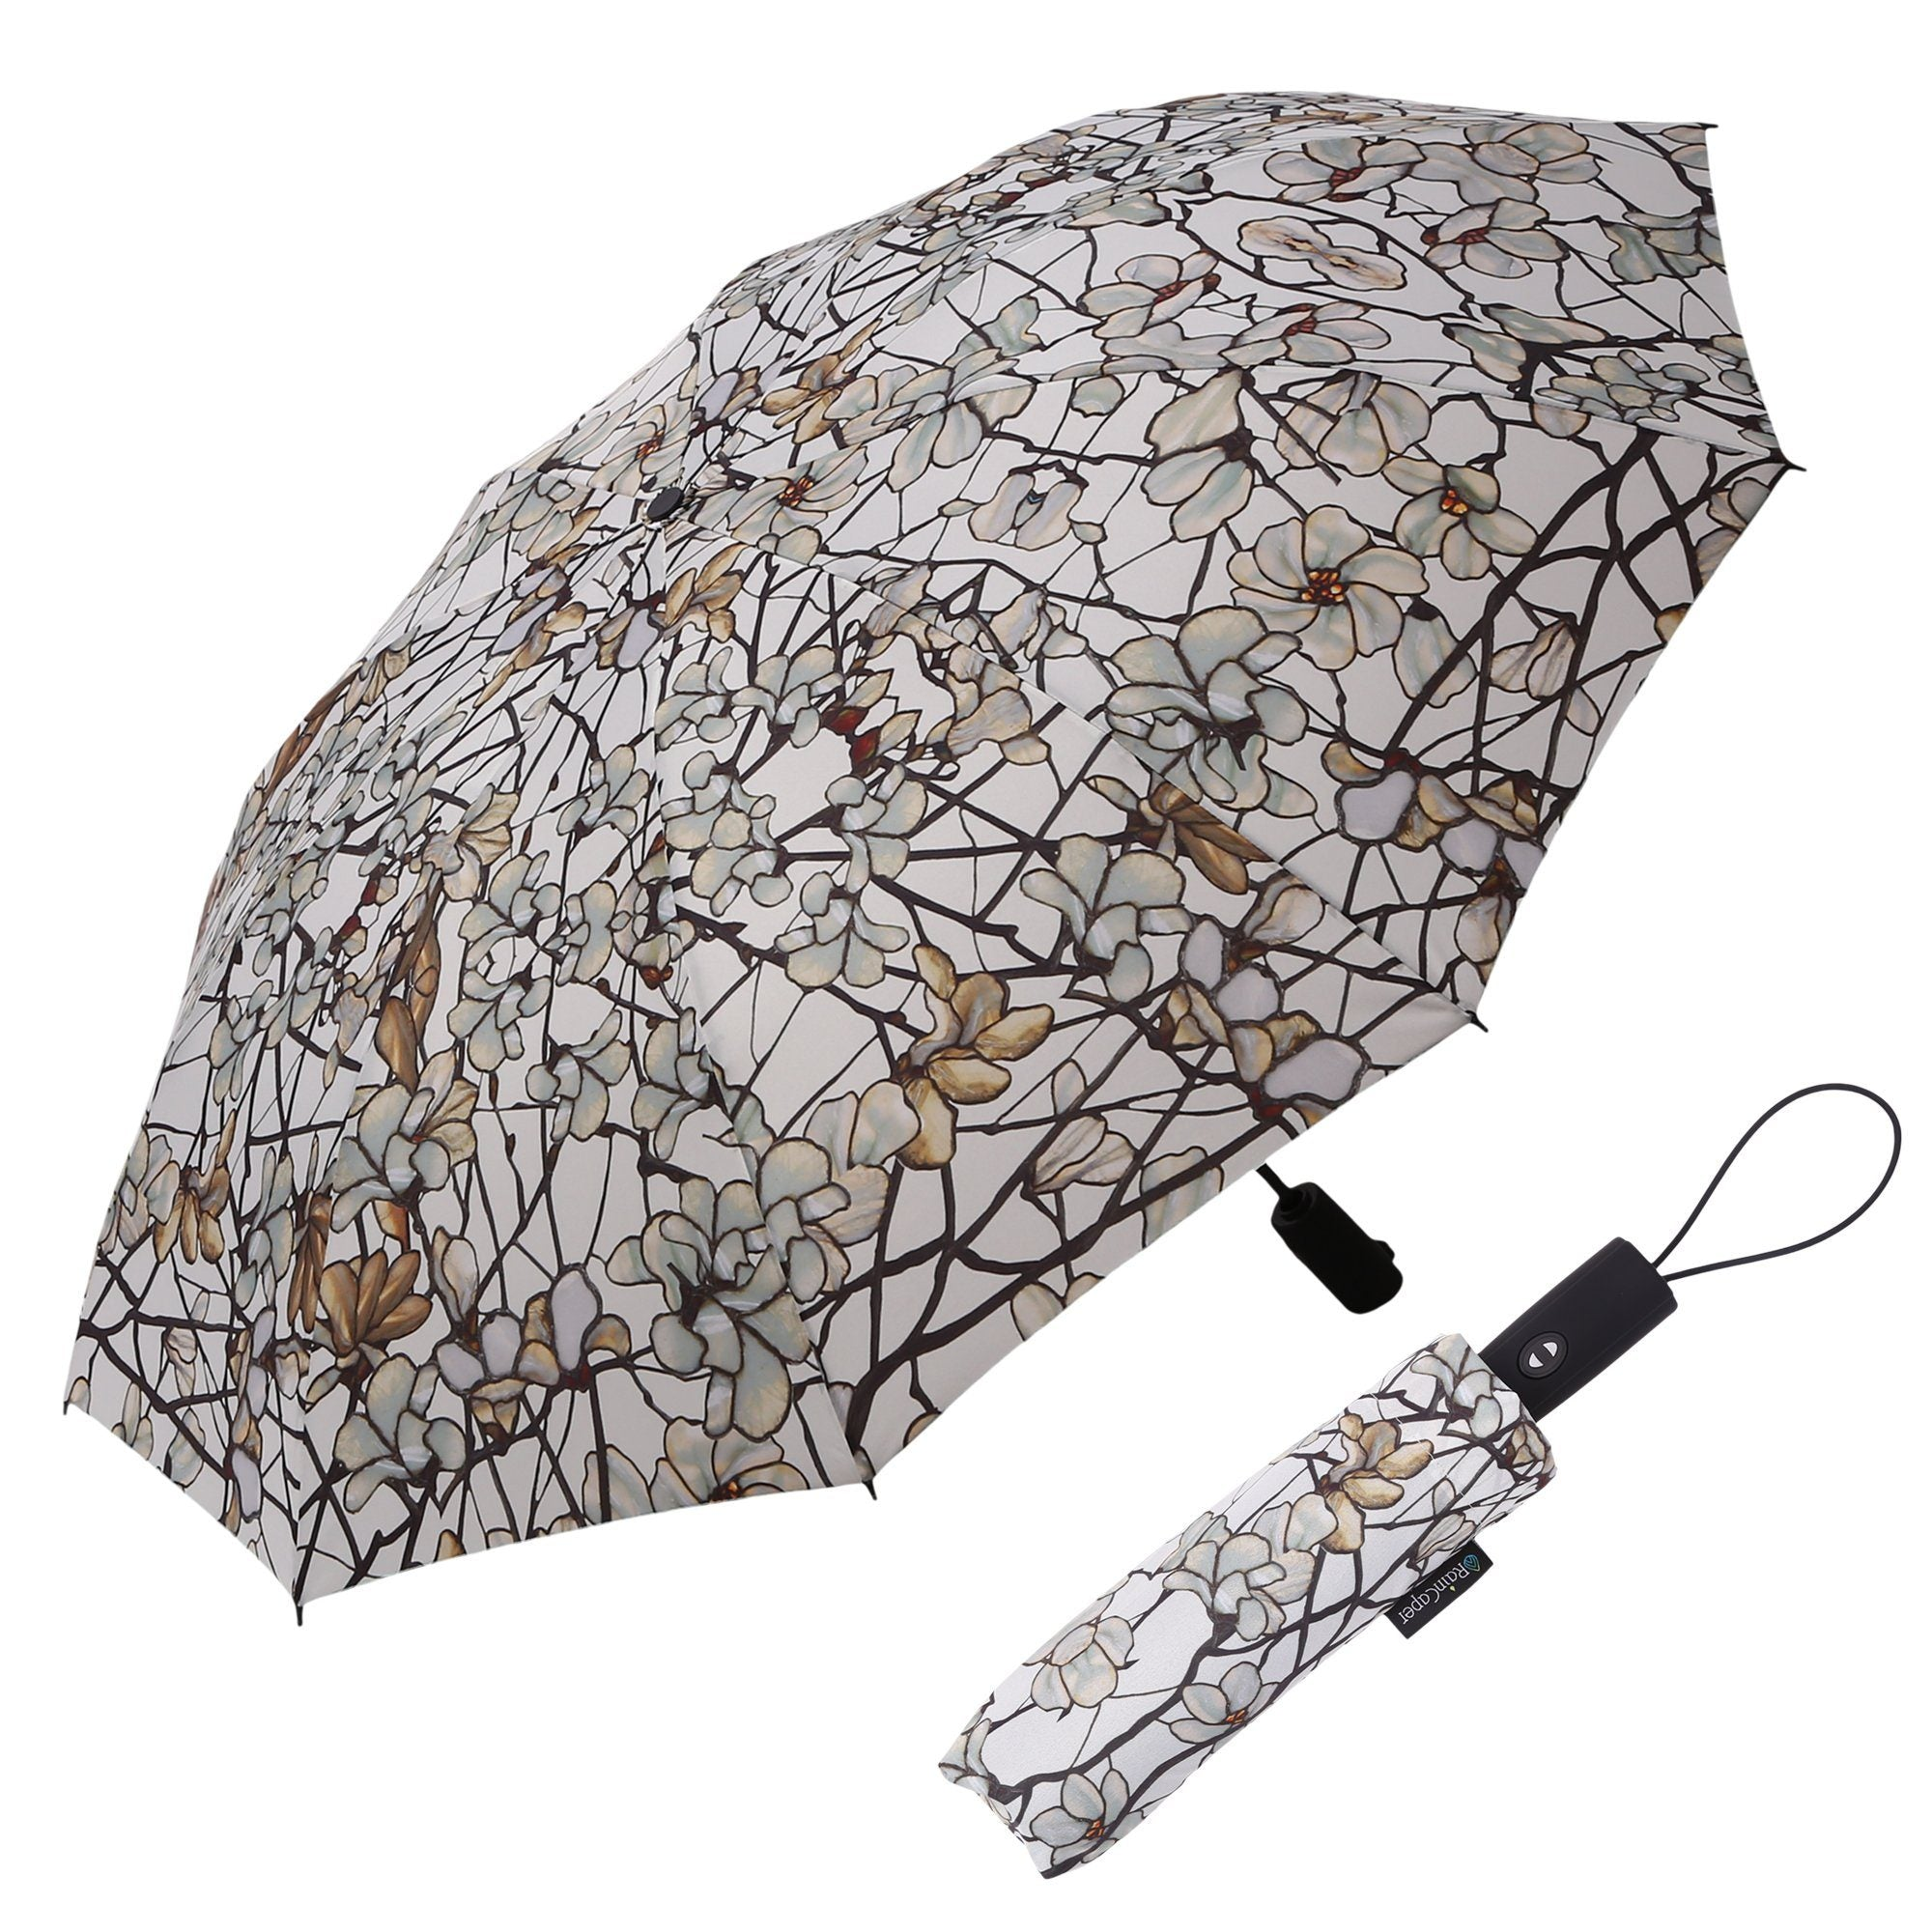 Image of a RainCaper Tiffany Magnolia folded traveling umbrella shown both open and closed